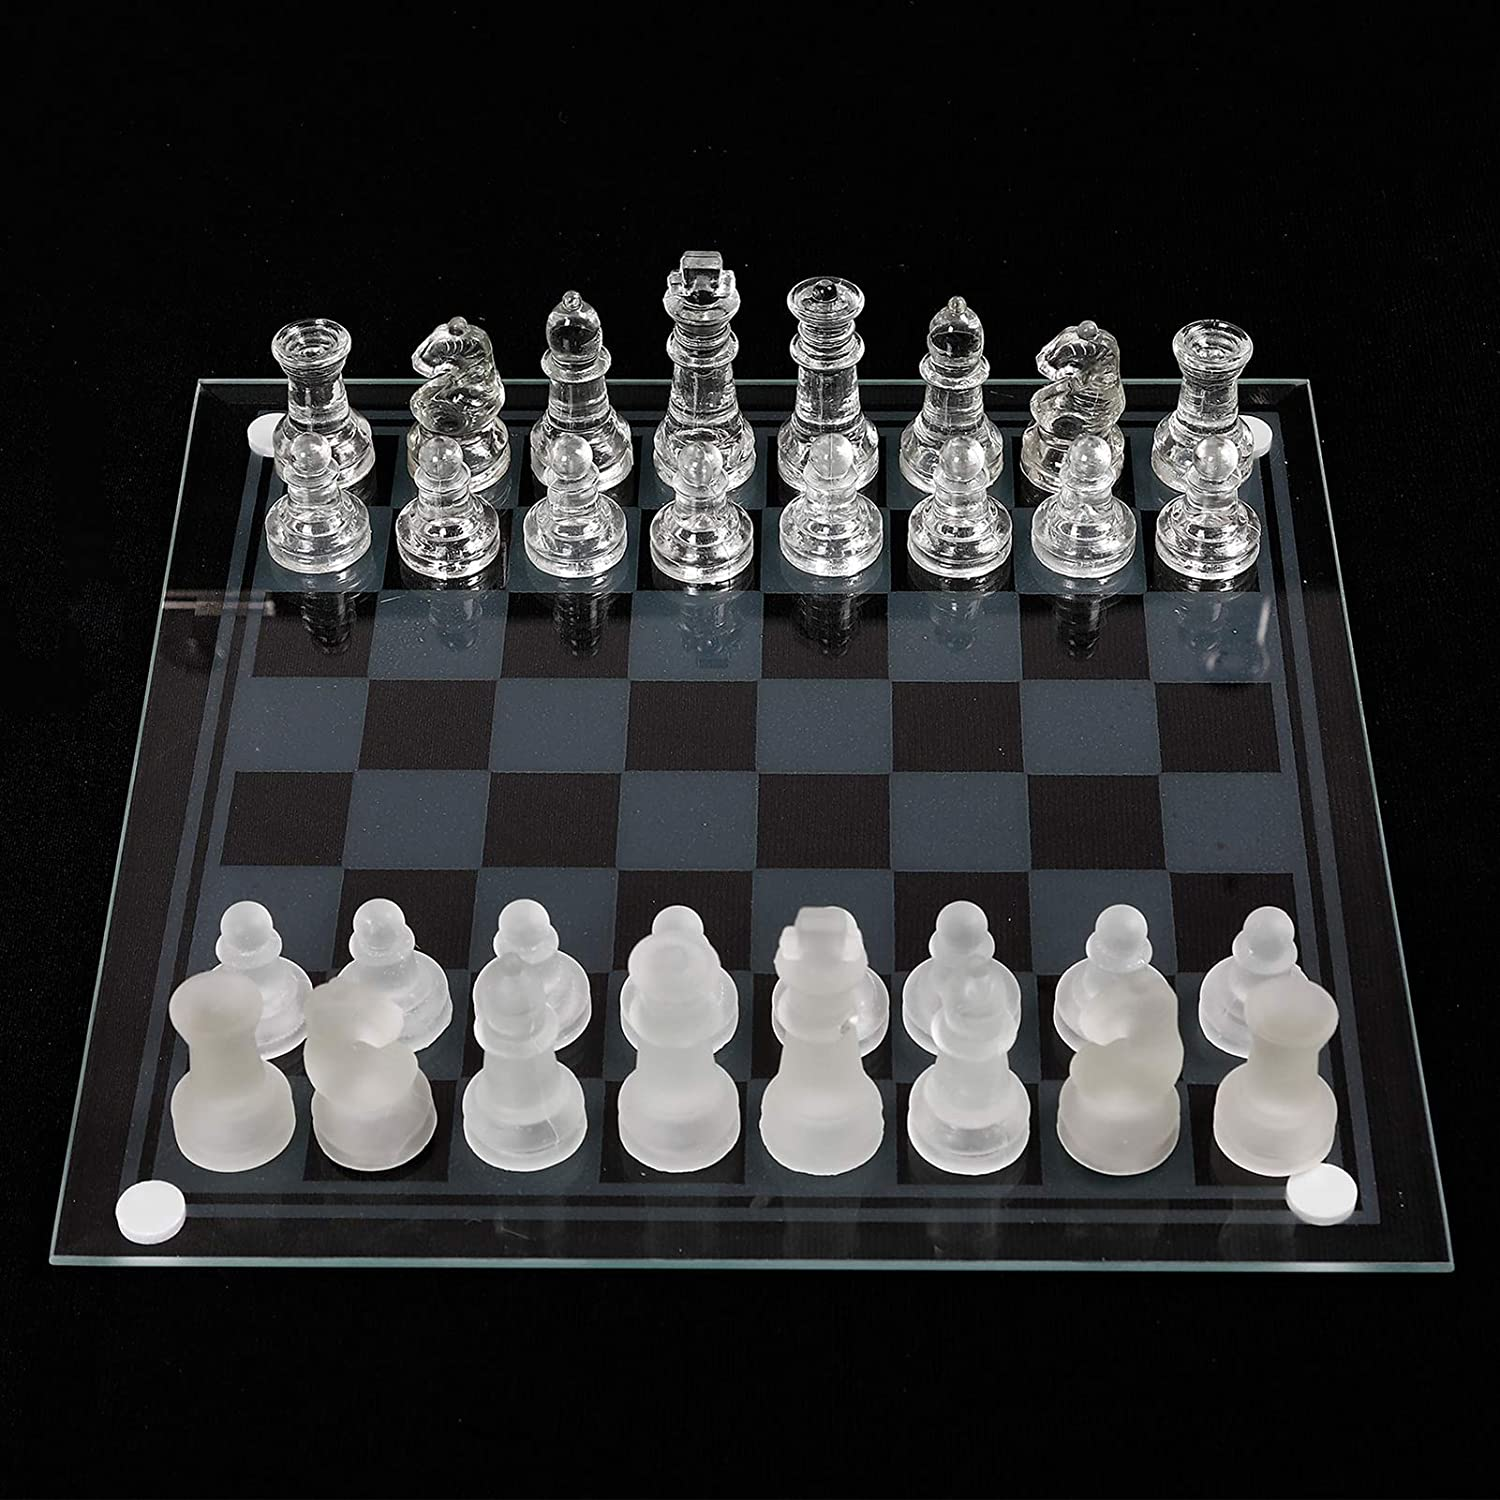 33 Time sale Pieces Glass Trust Chess and Crystal Set Solid